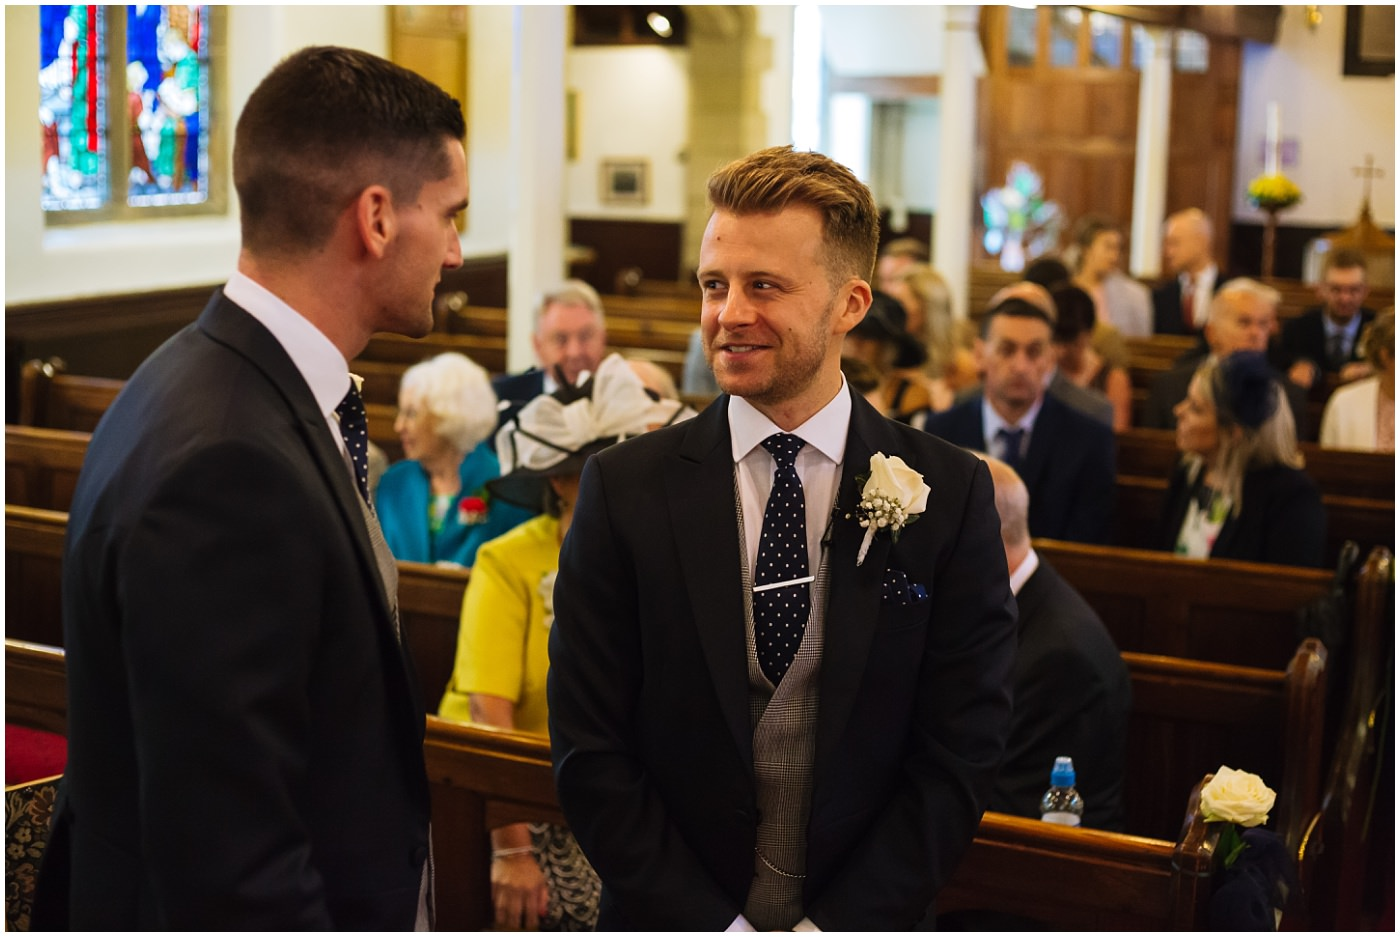 groom and best man at church